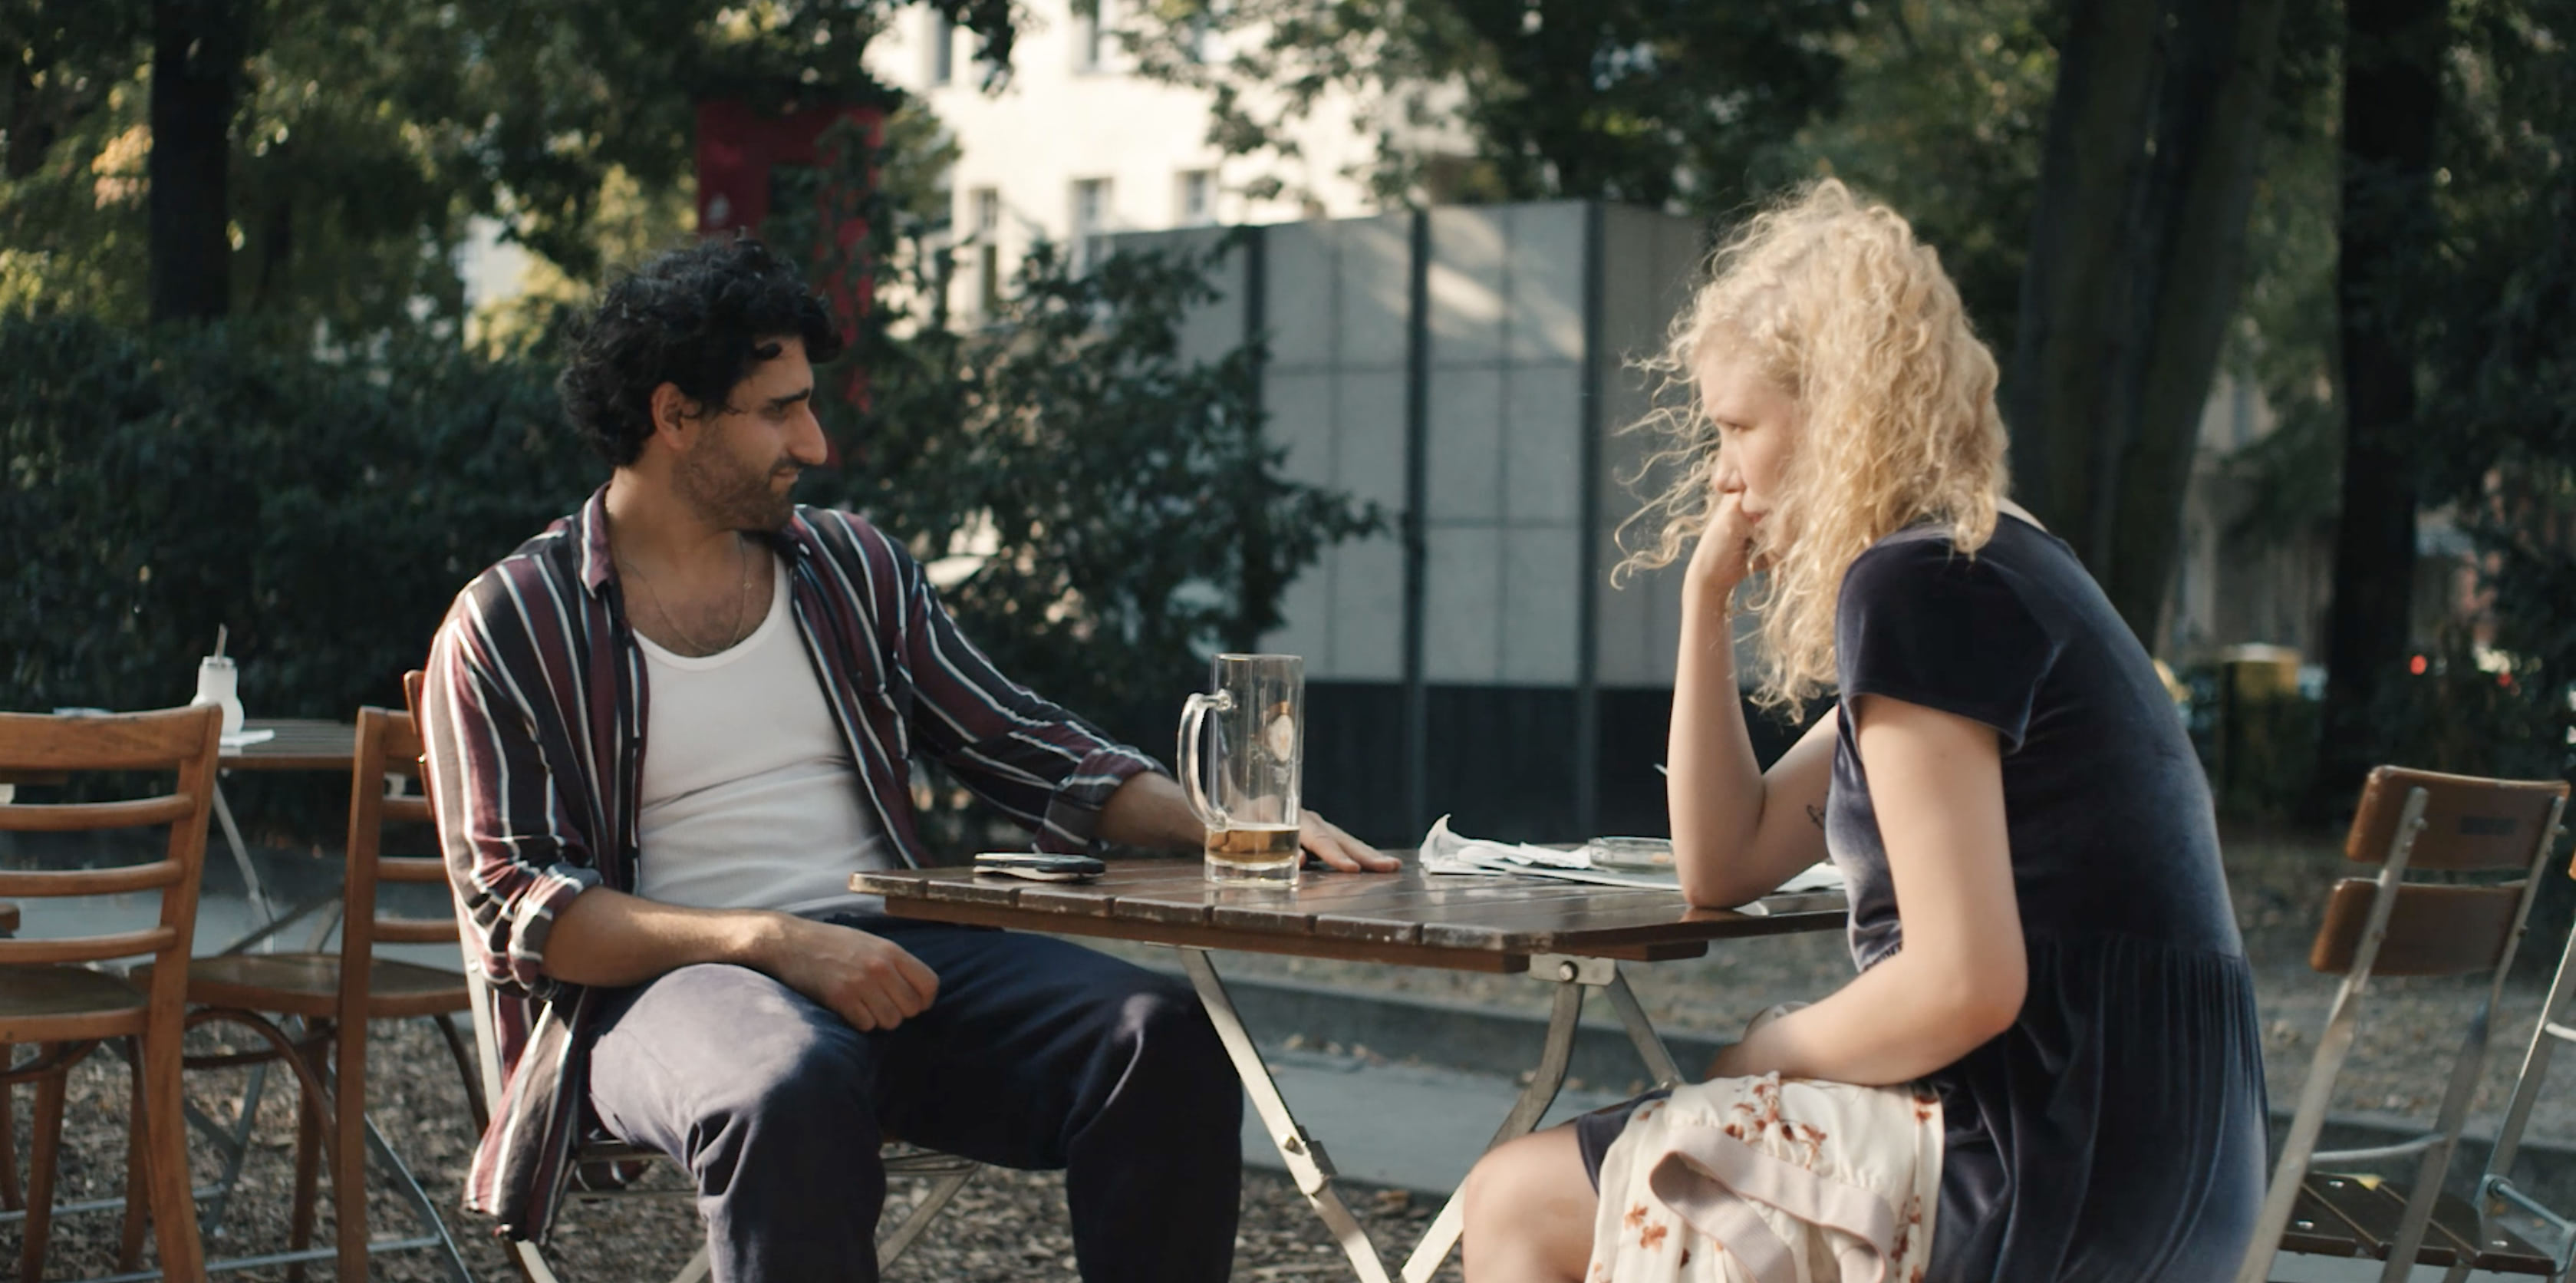 A man and a woman sitting at a table outside, the woman's hair is blowing in the wind.